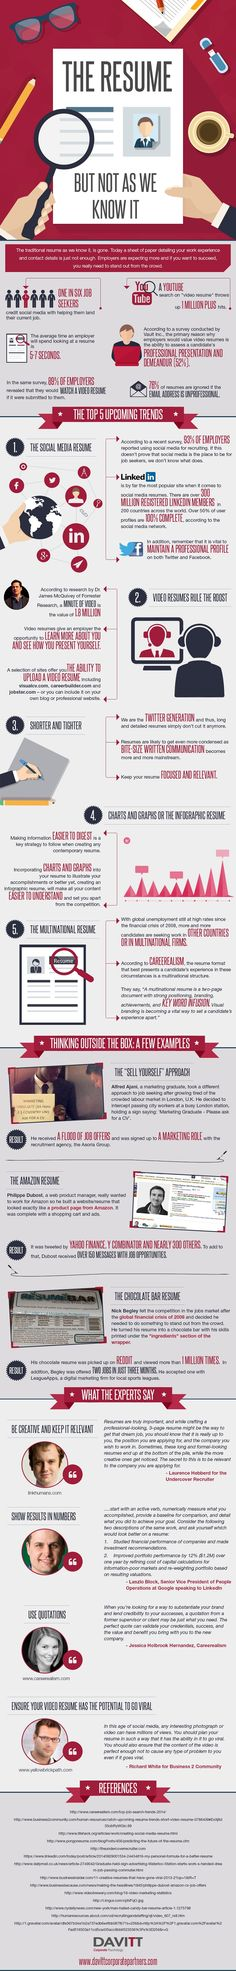 How To Write A Resume - Singapore Resume Samples That Are Proven - counseling resume